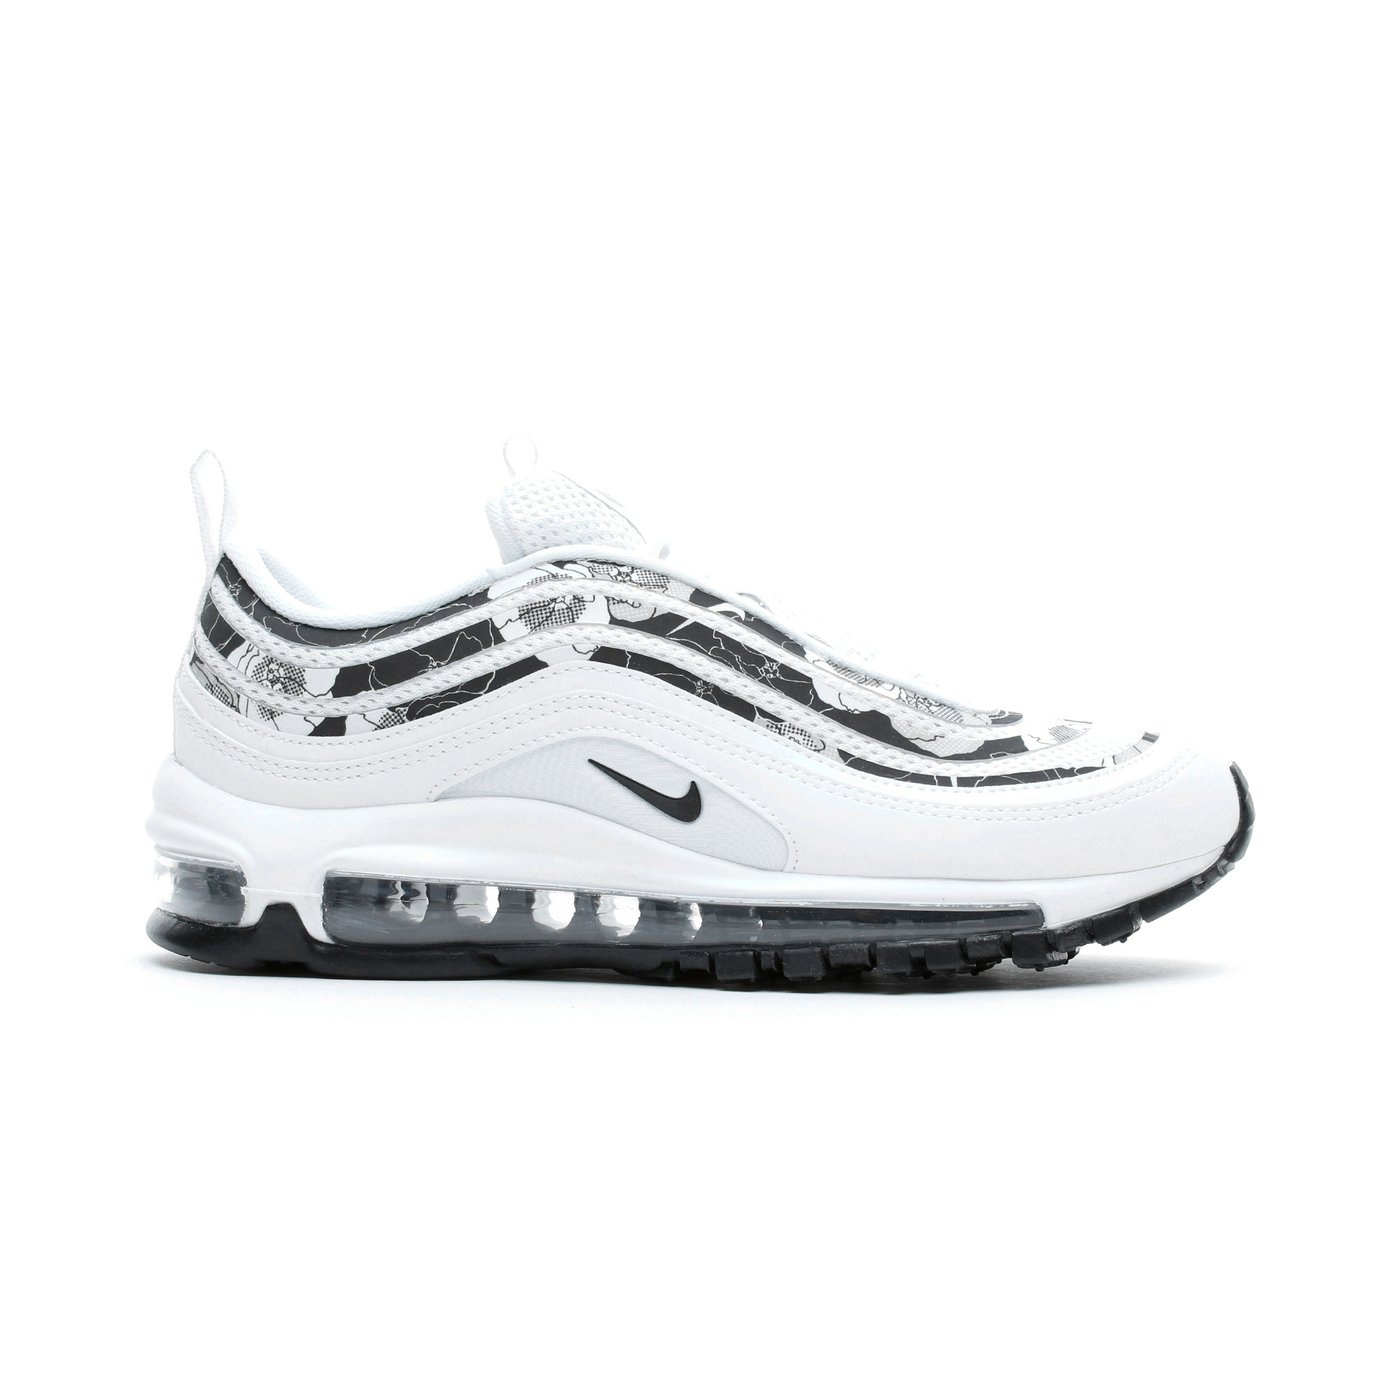 The Nike Air VaporMax 97 Silver Bullet Touches Down